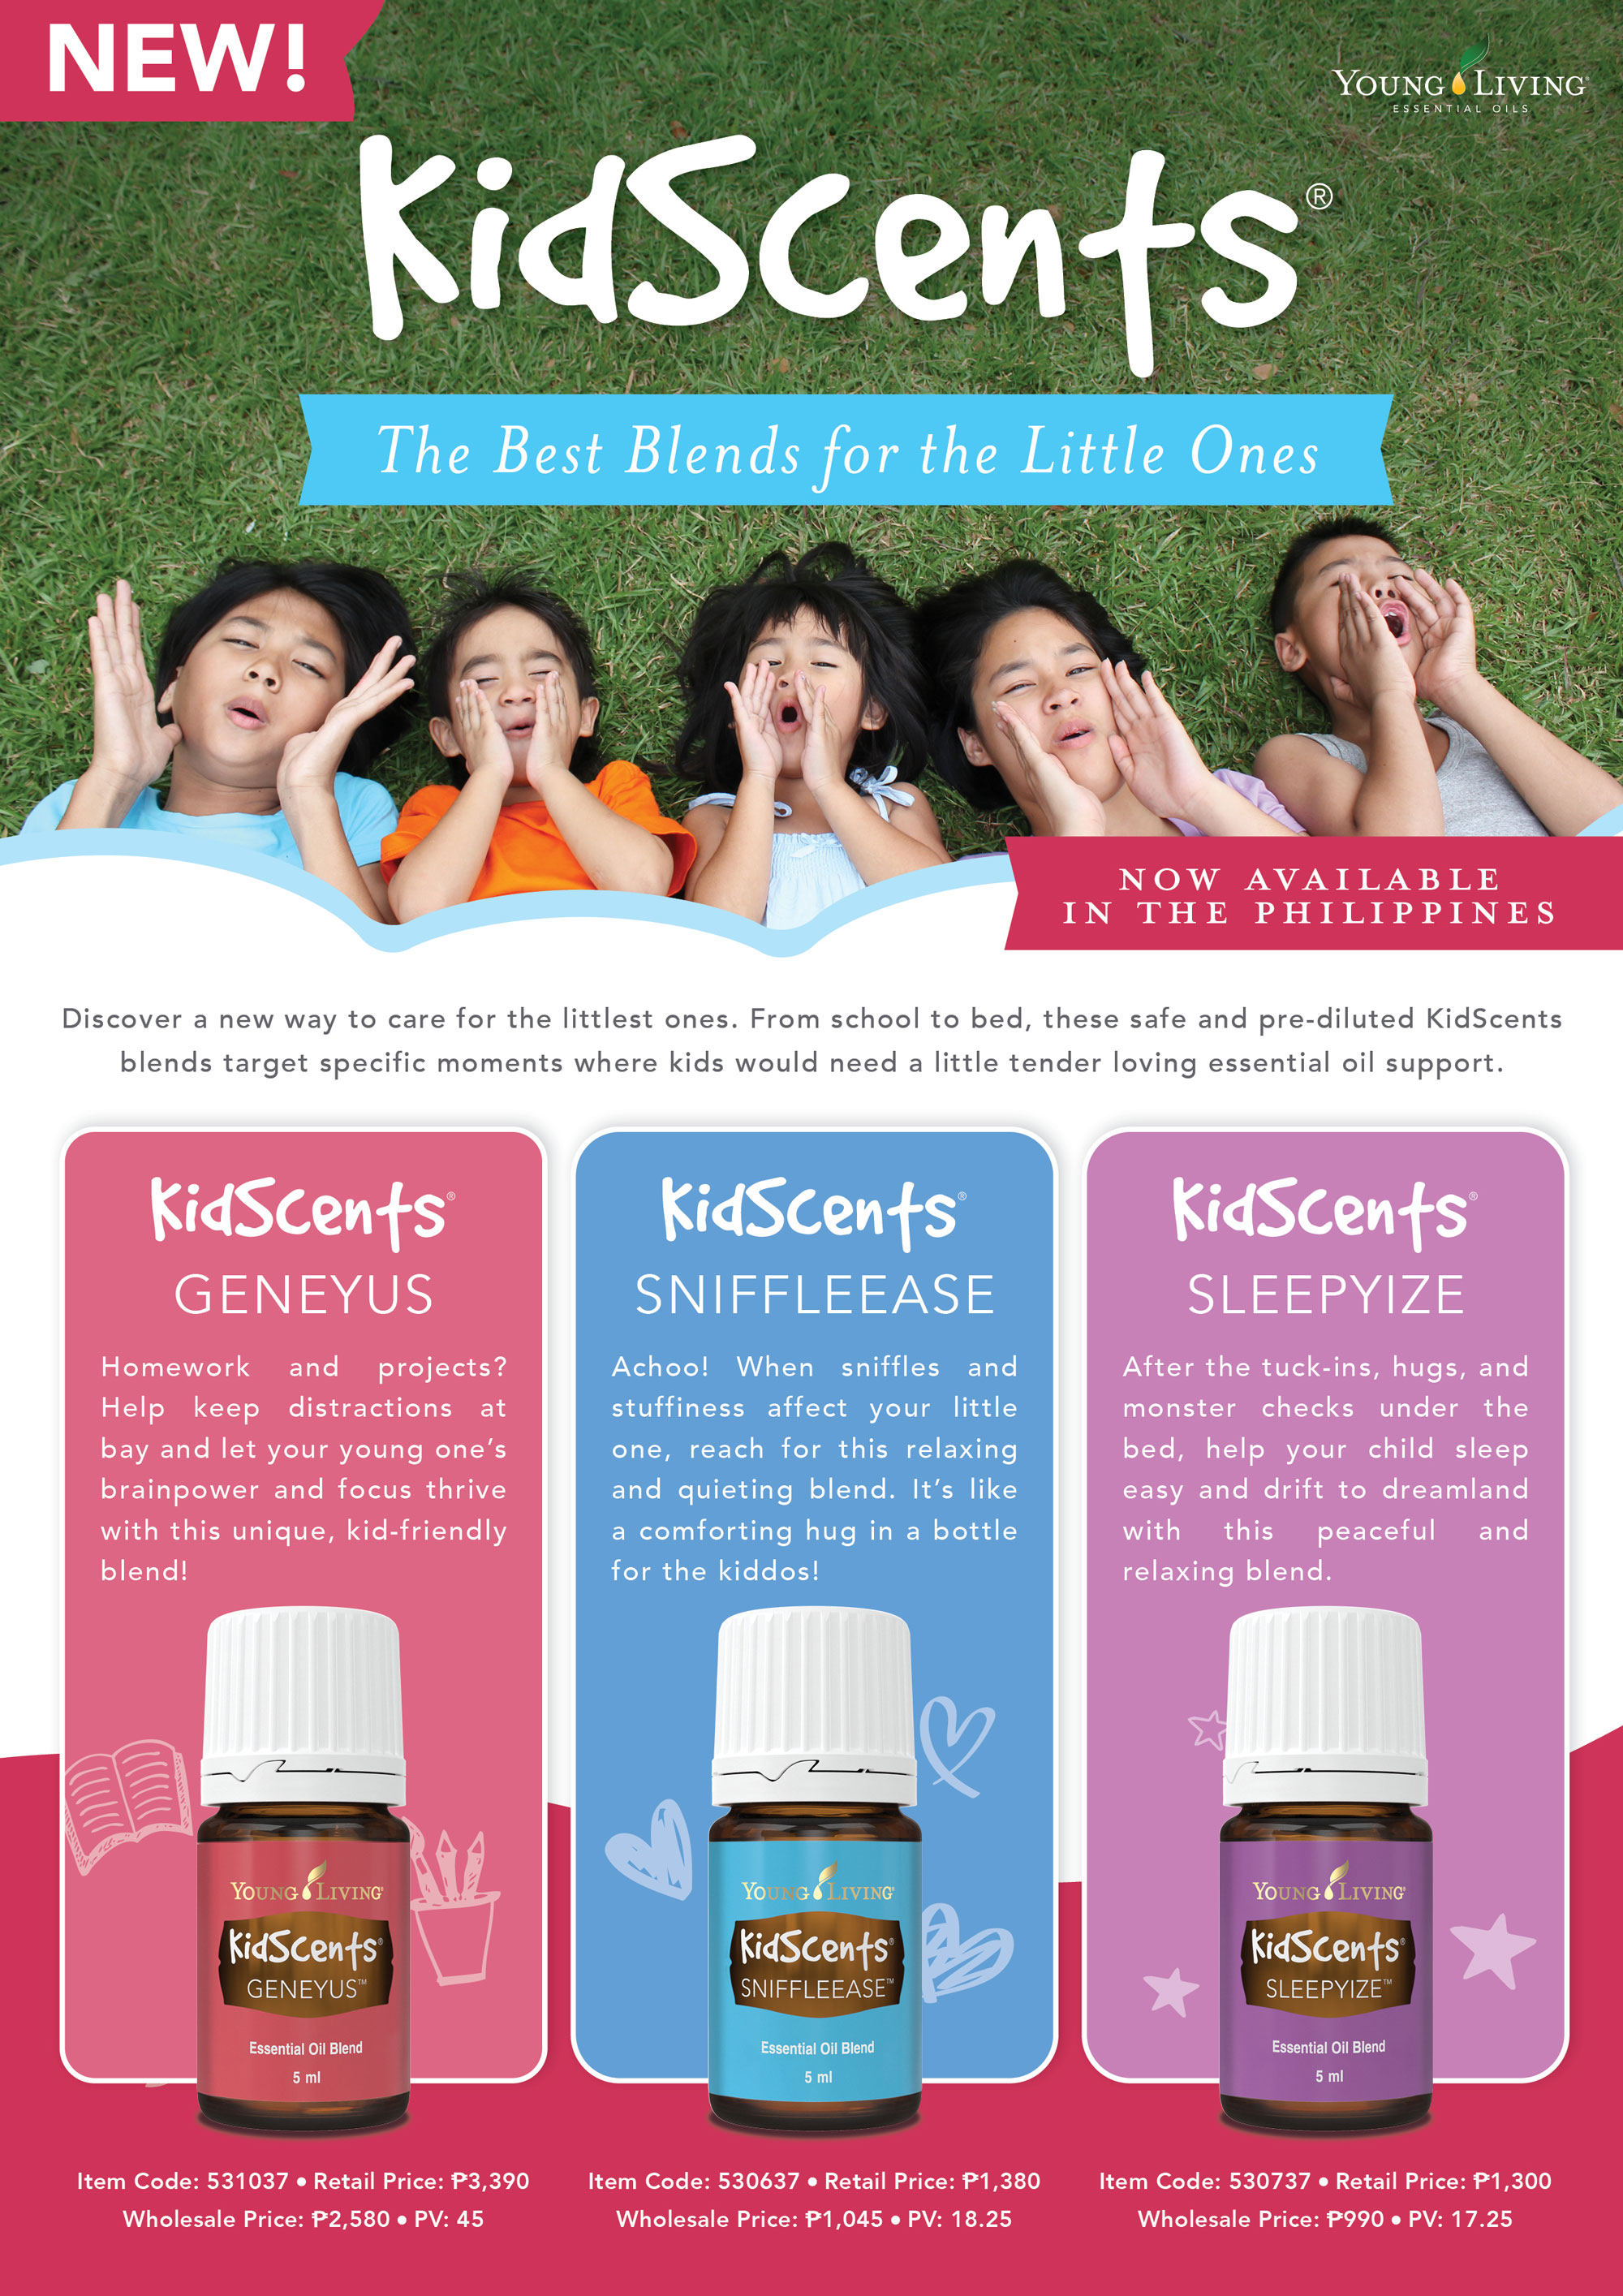 Kidscents Young Living Philippines Young Living Essential Oils